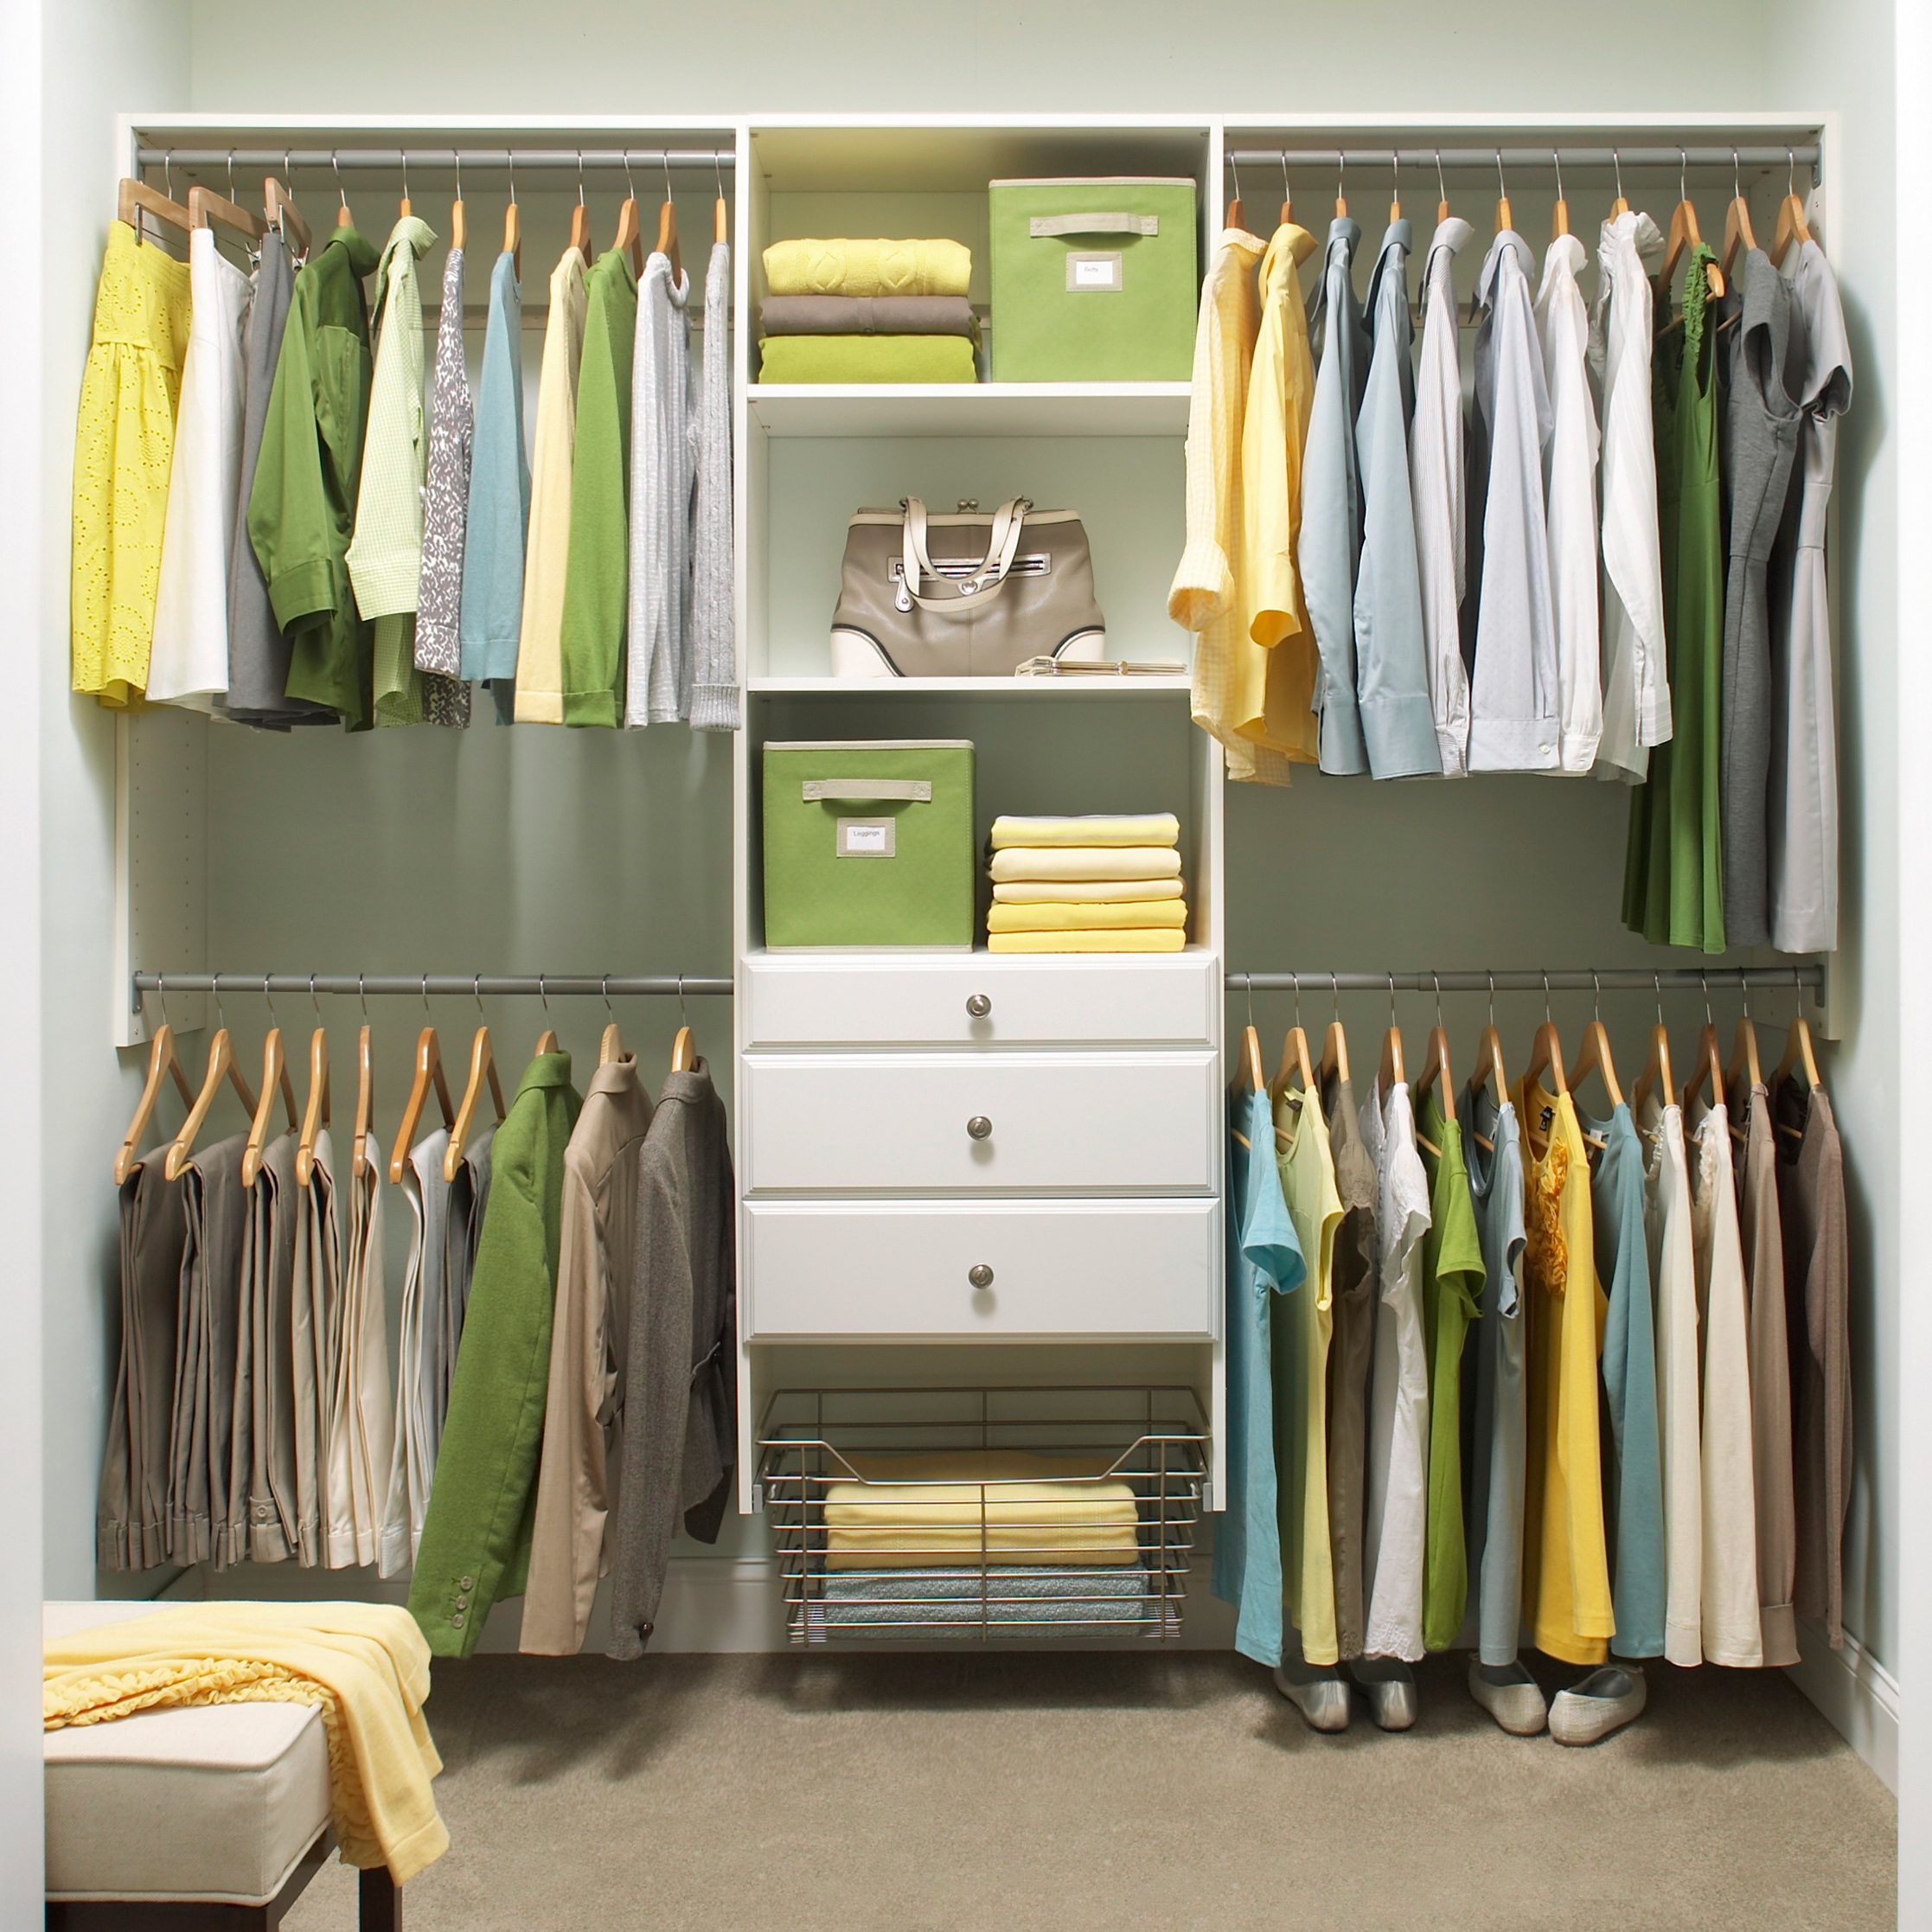 Closet Organization Made Simple by Martha Stewart Living at The Home Depot  Closet System. Closet Organization Made Simple by Martha Stewart Living at The